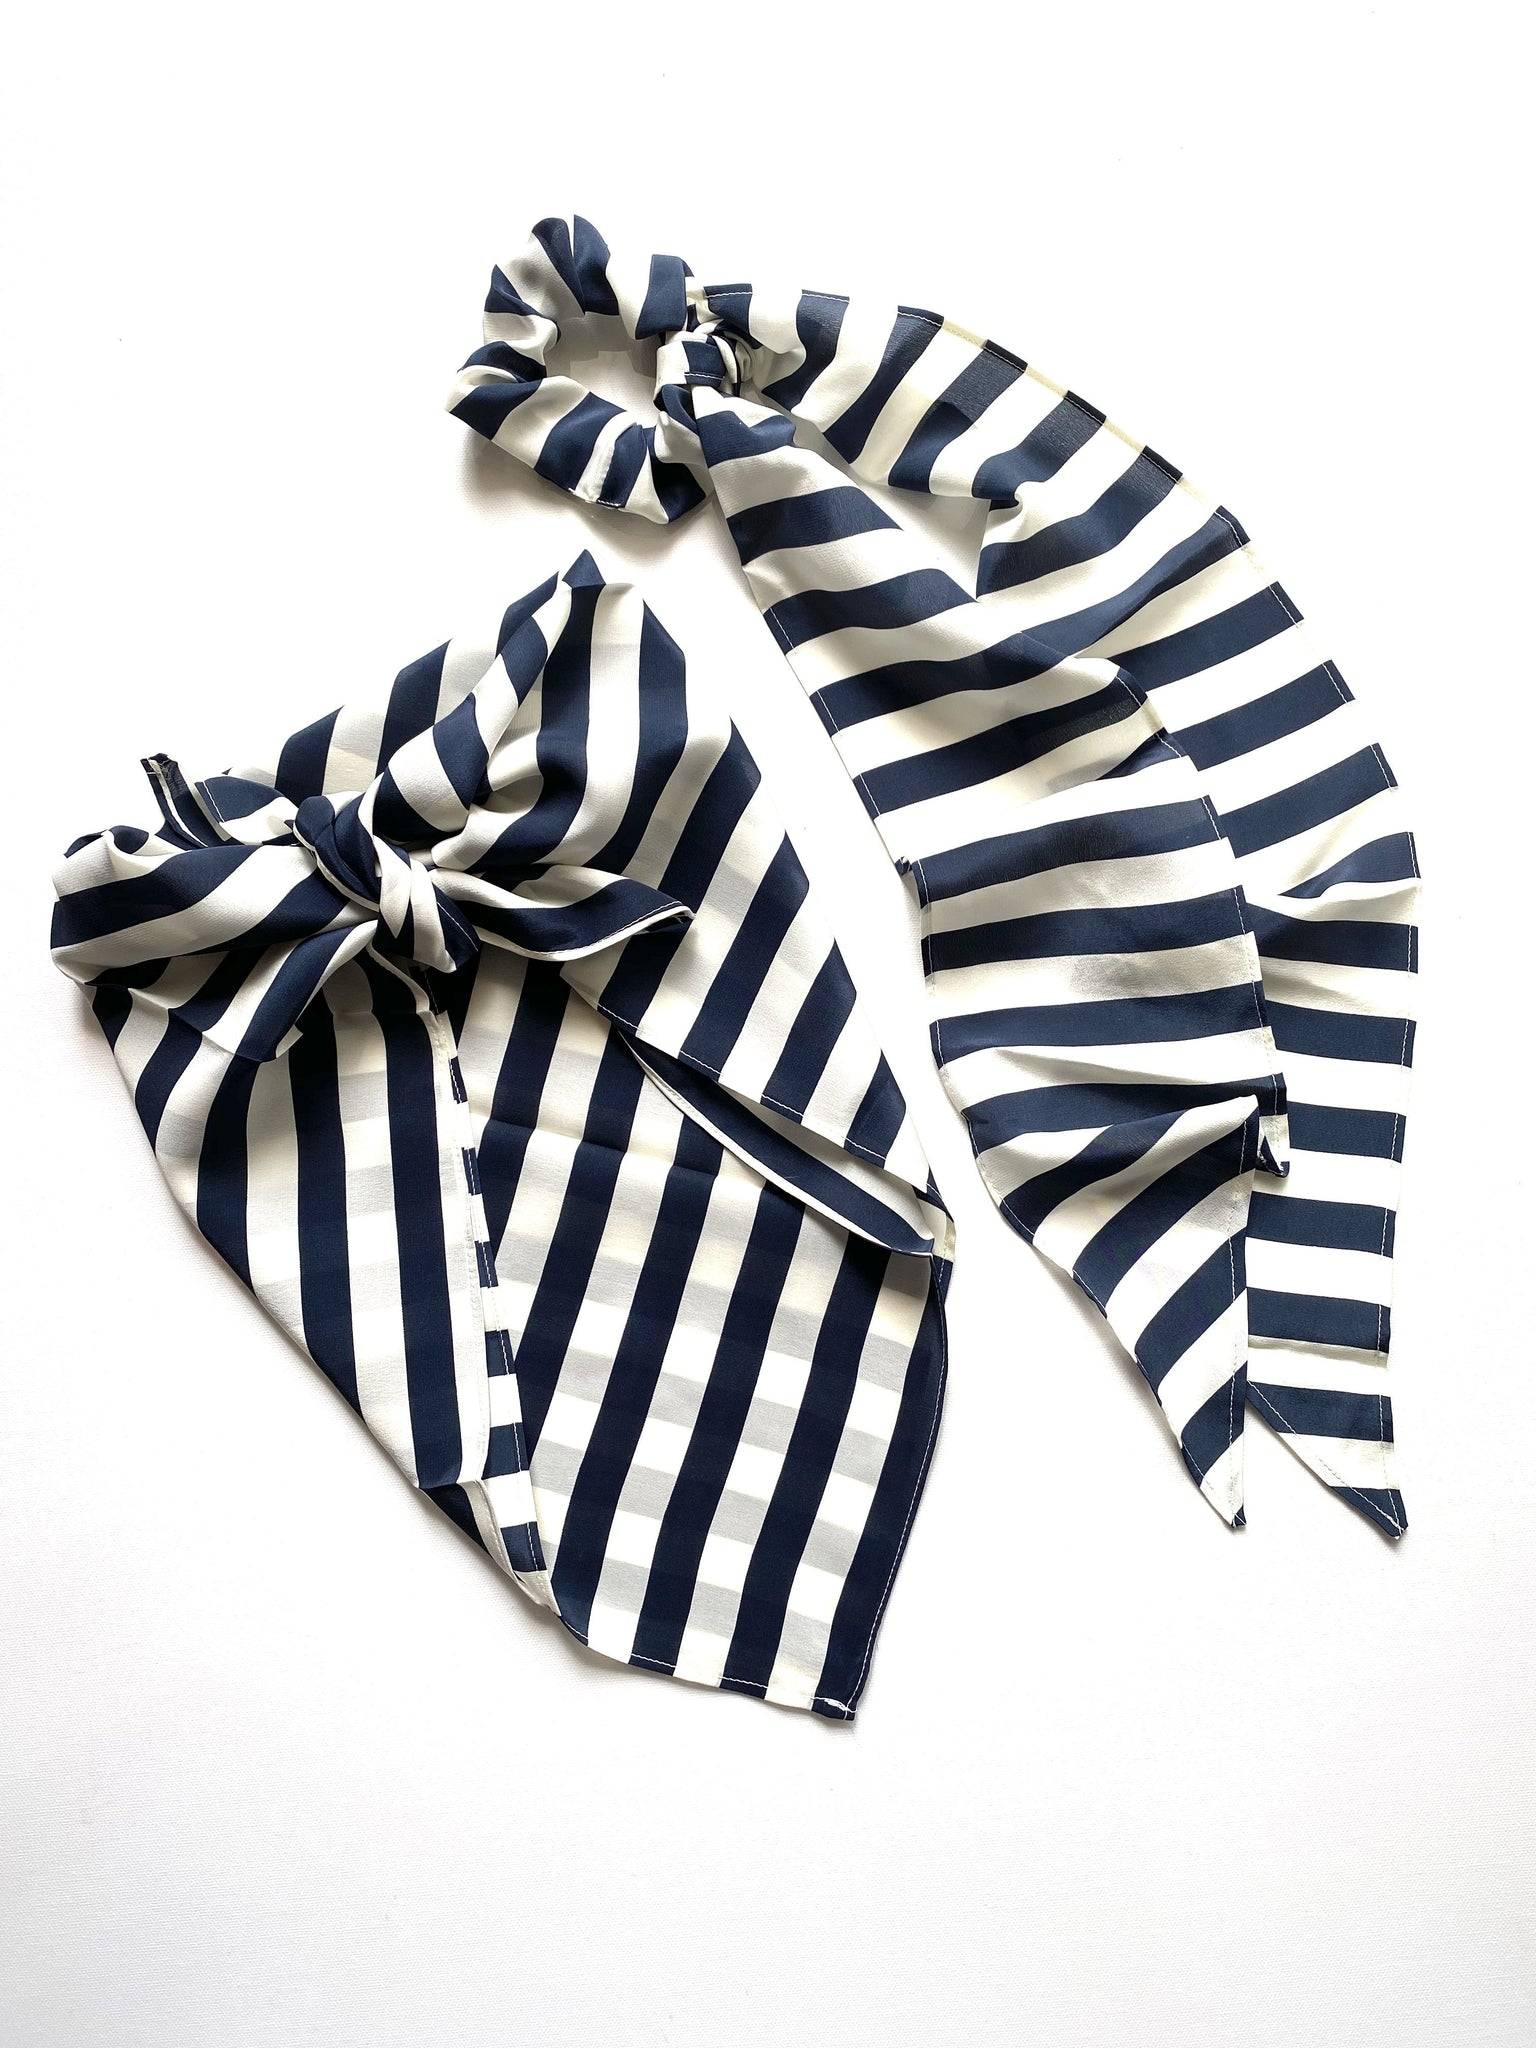 Clothing The Neptune Bandana Top & Ribbon Scrunchie Set - Navy & Cream Stripe Vanessa Mooney